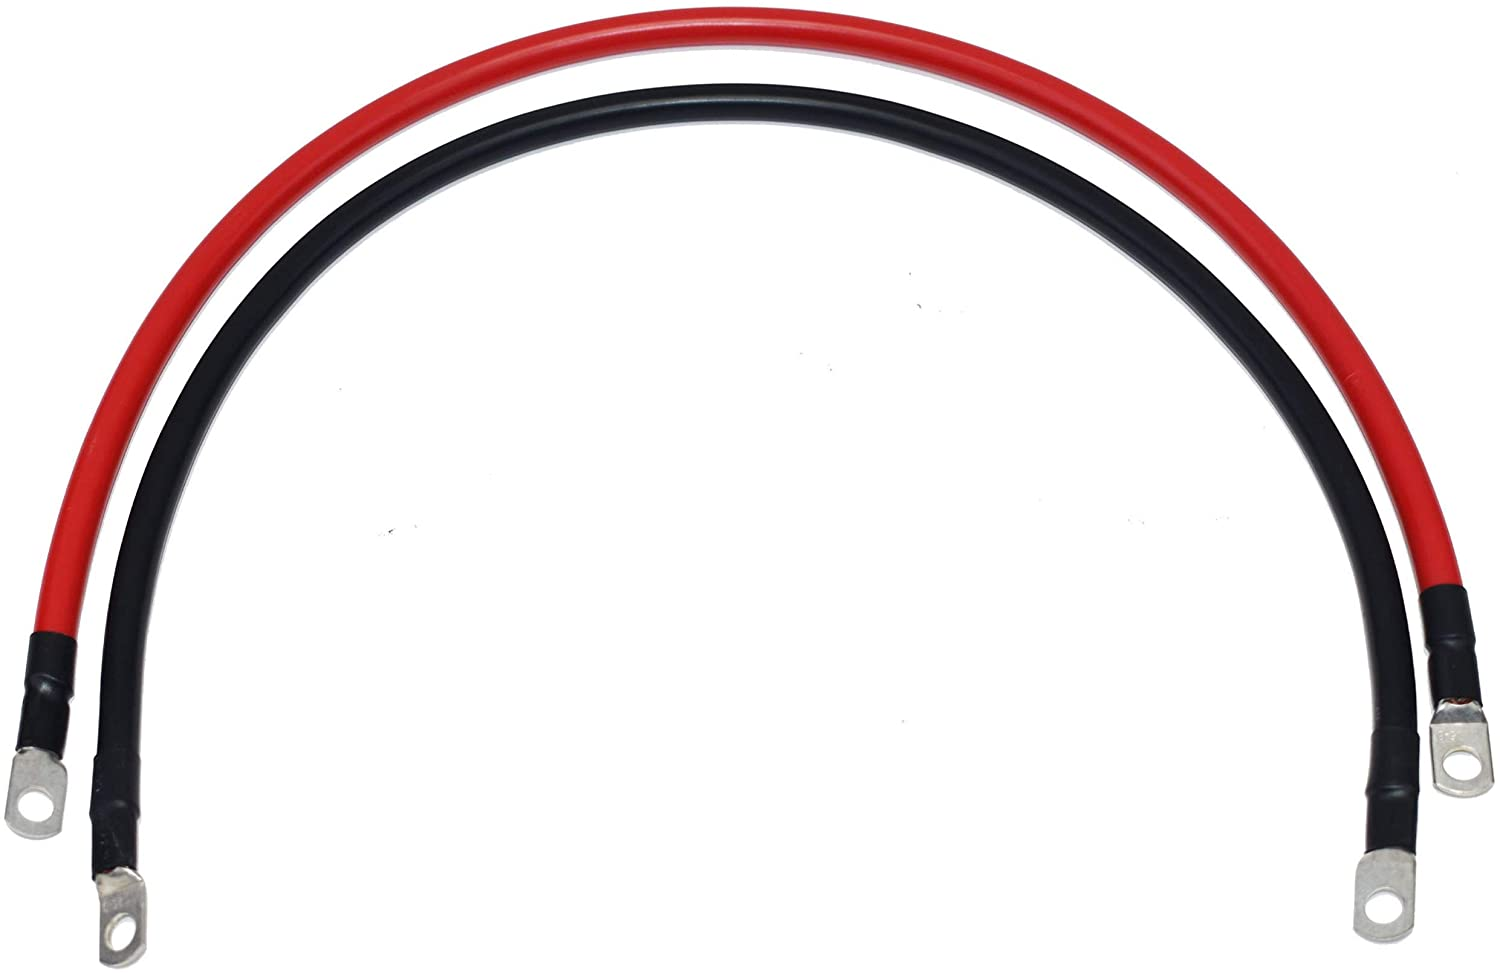 A-Team Performance 2 Ft positive and negative cables, Set with 5/16